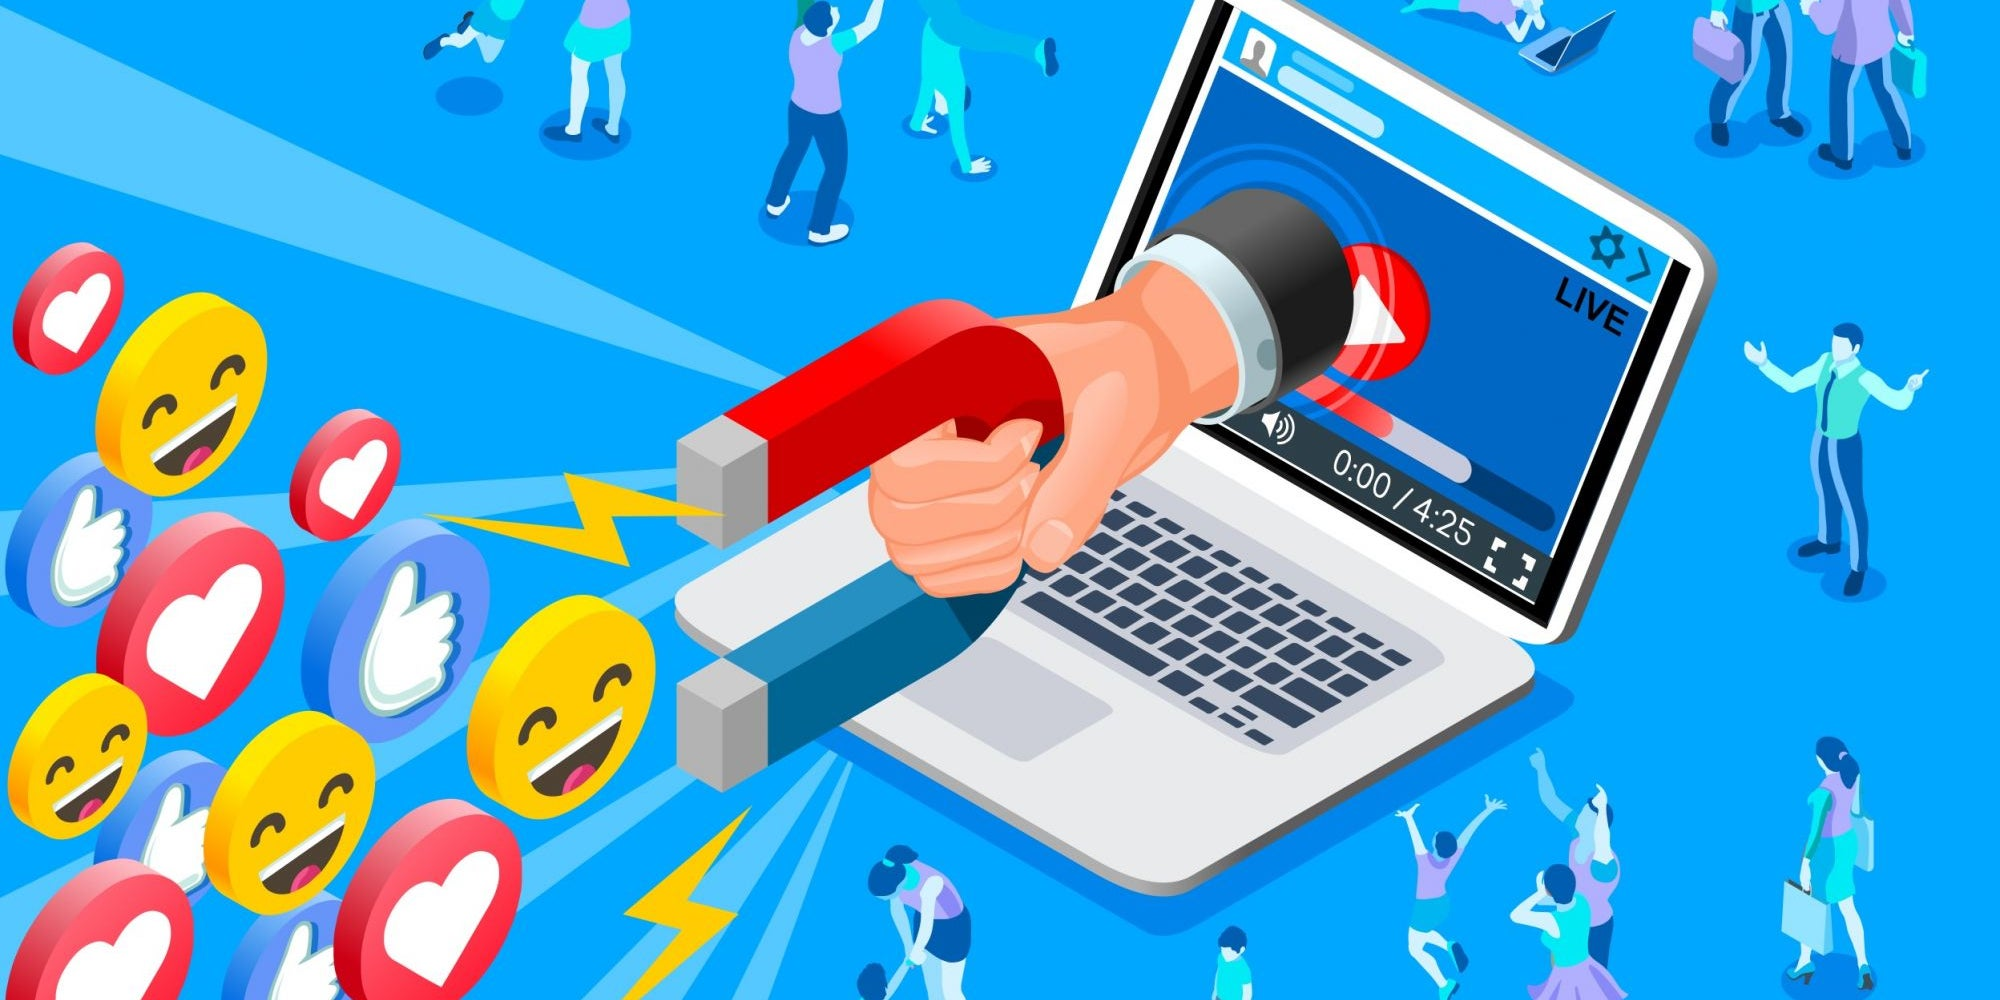 Besides Cheap Data, What is Driving Online Content Consumption in India?